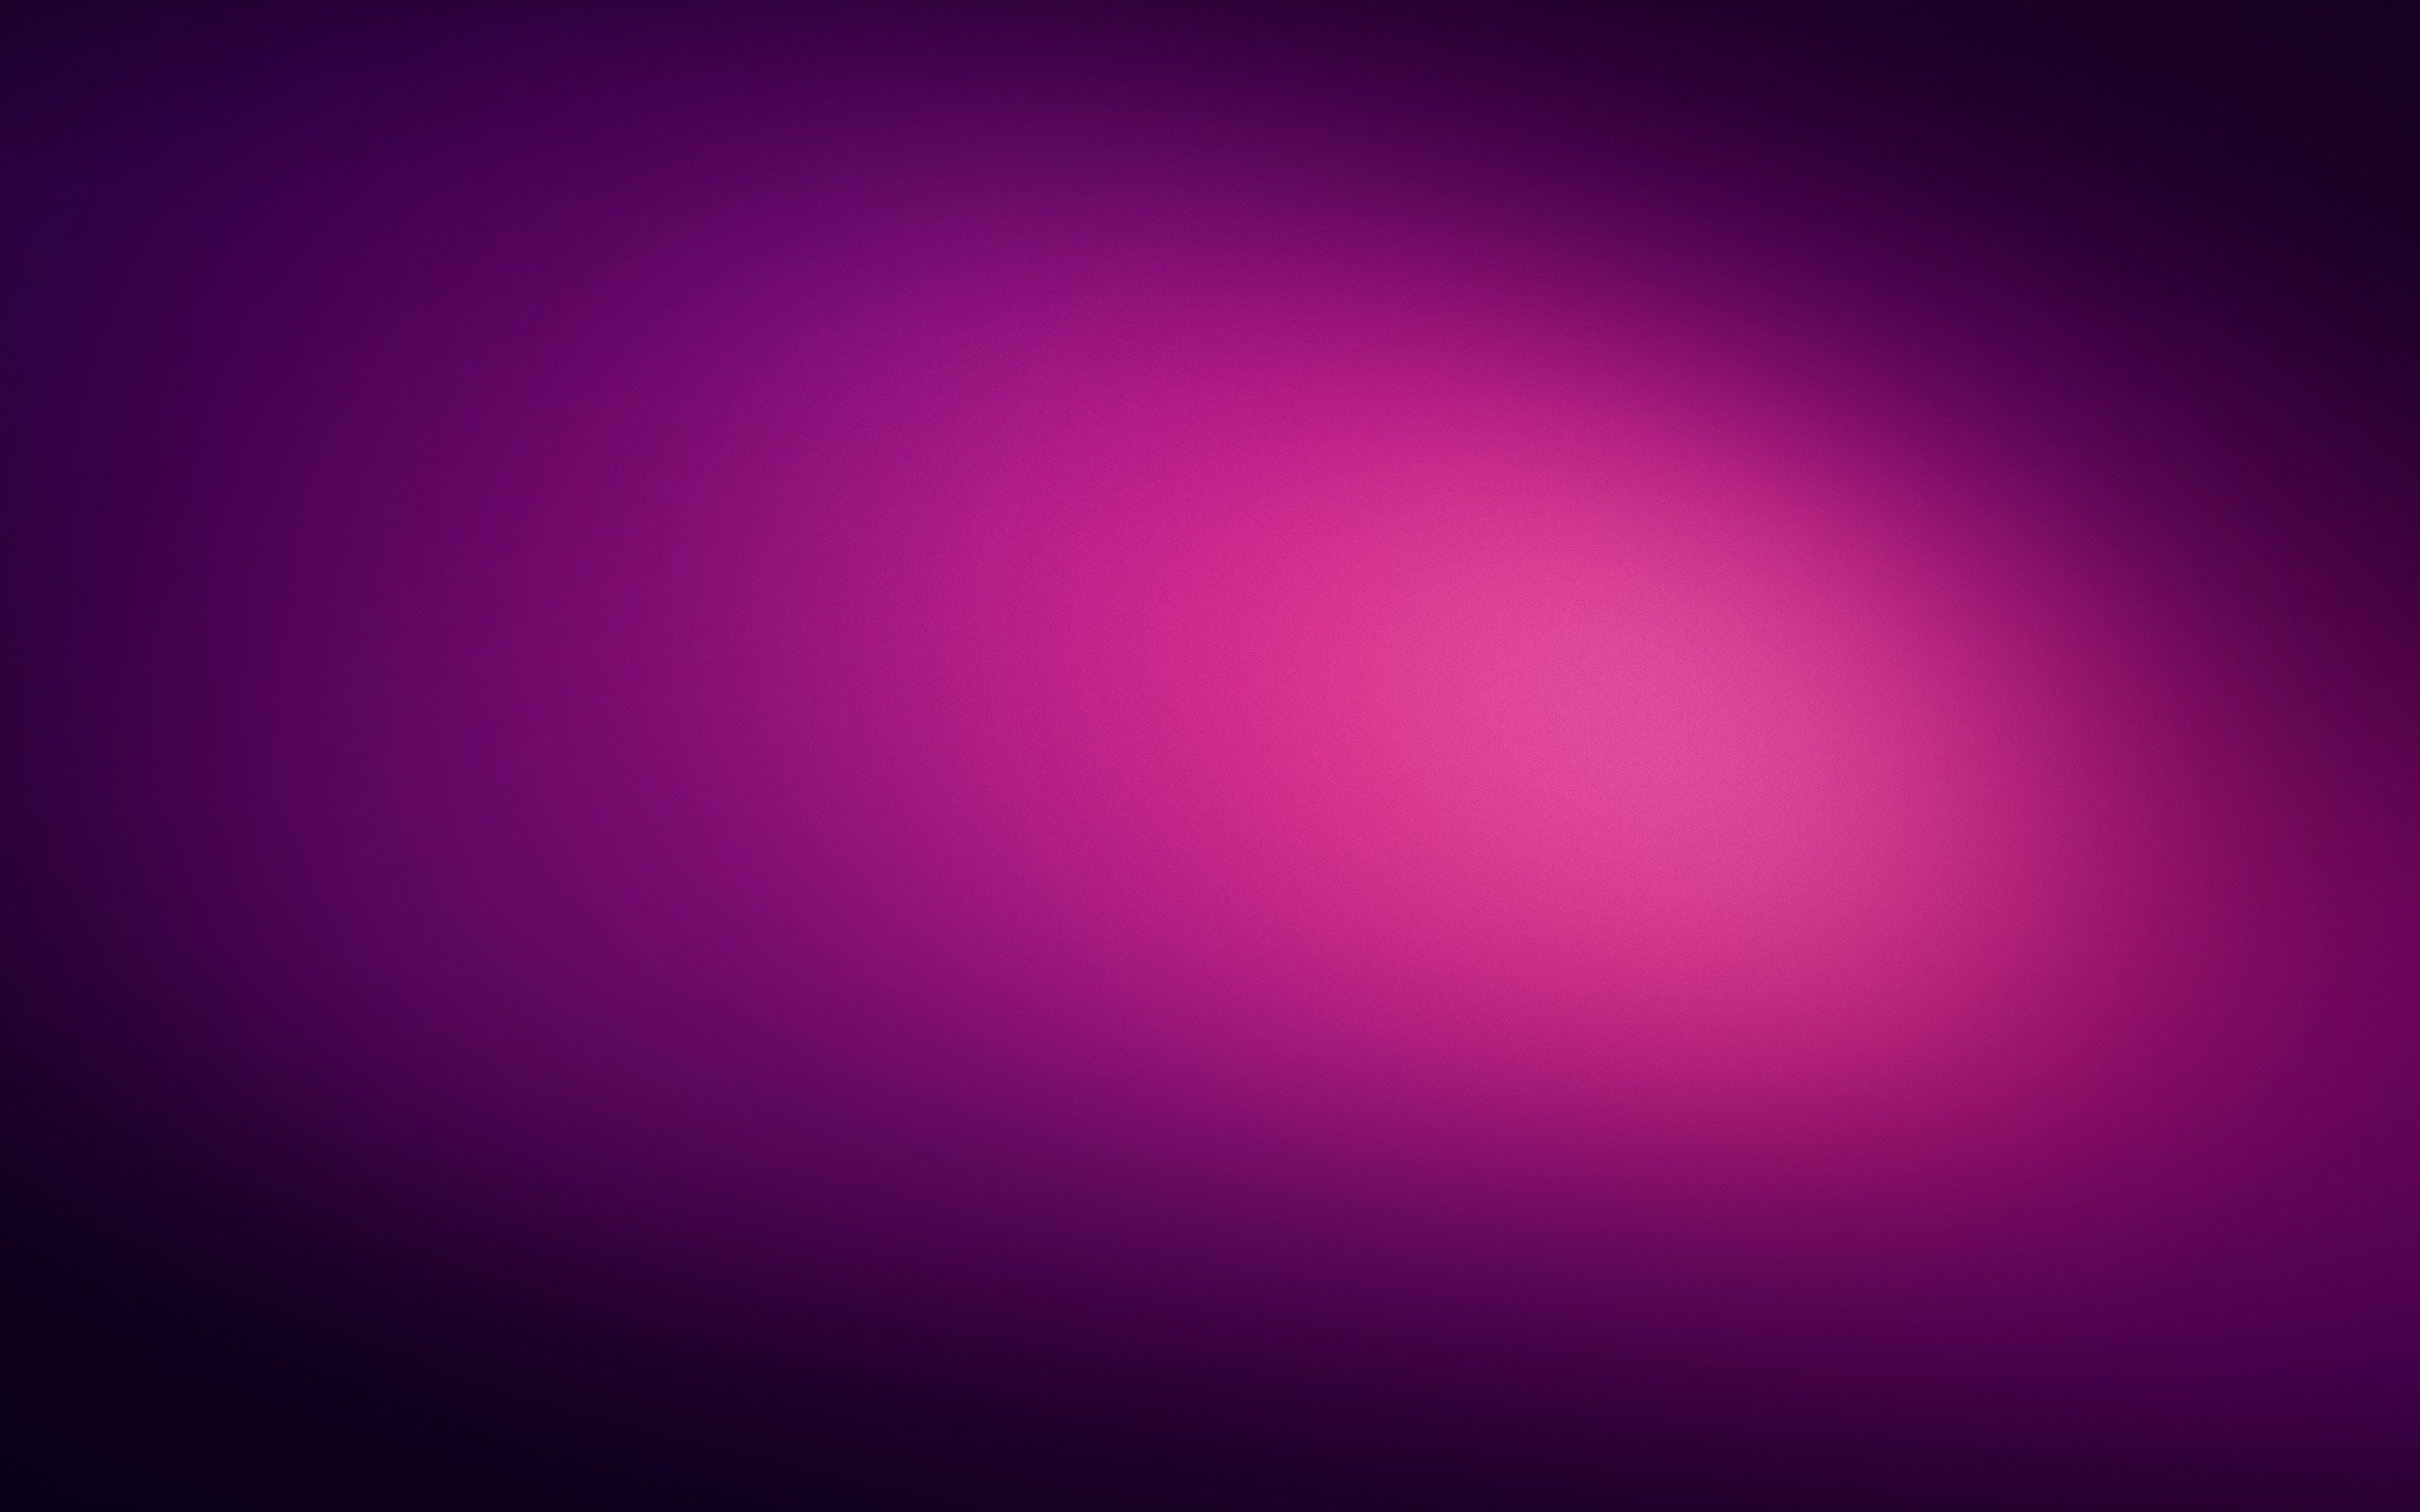 purple gaussian blur backgrounds HD Wallpaper